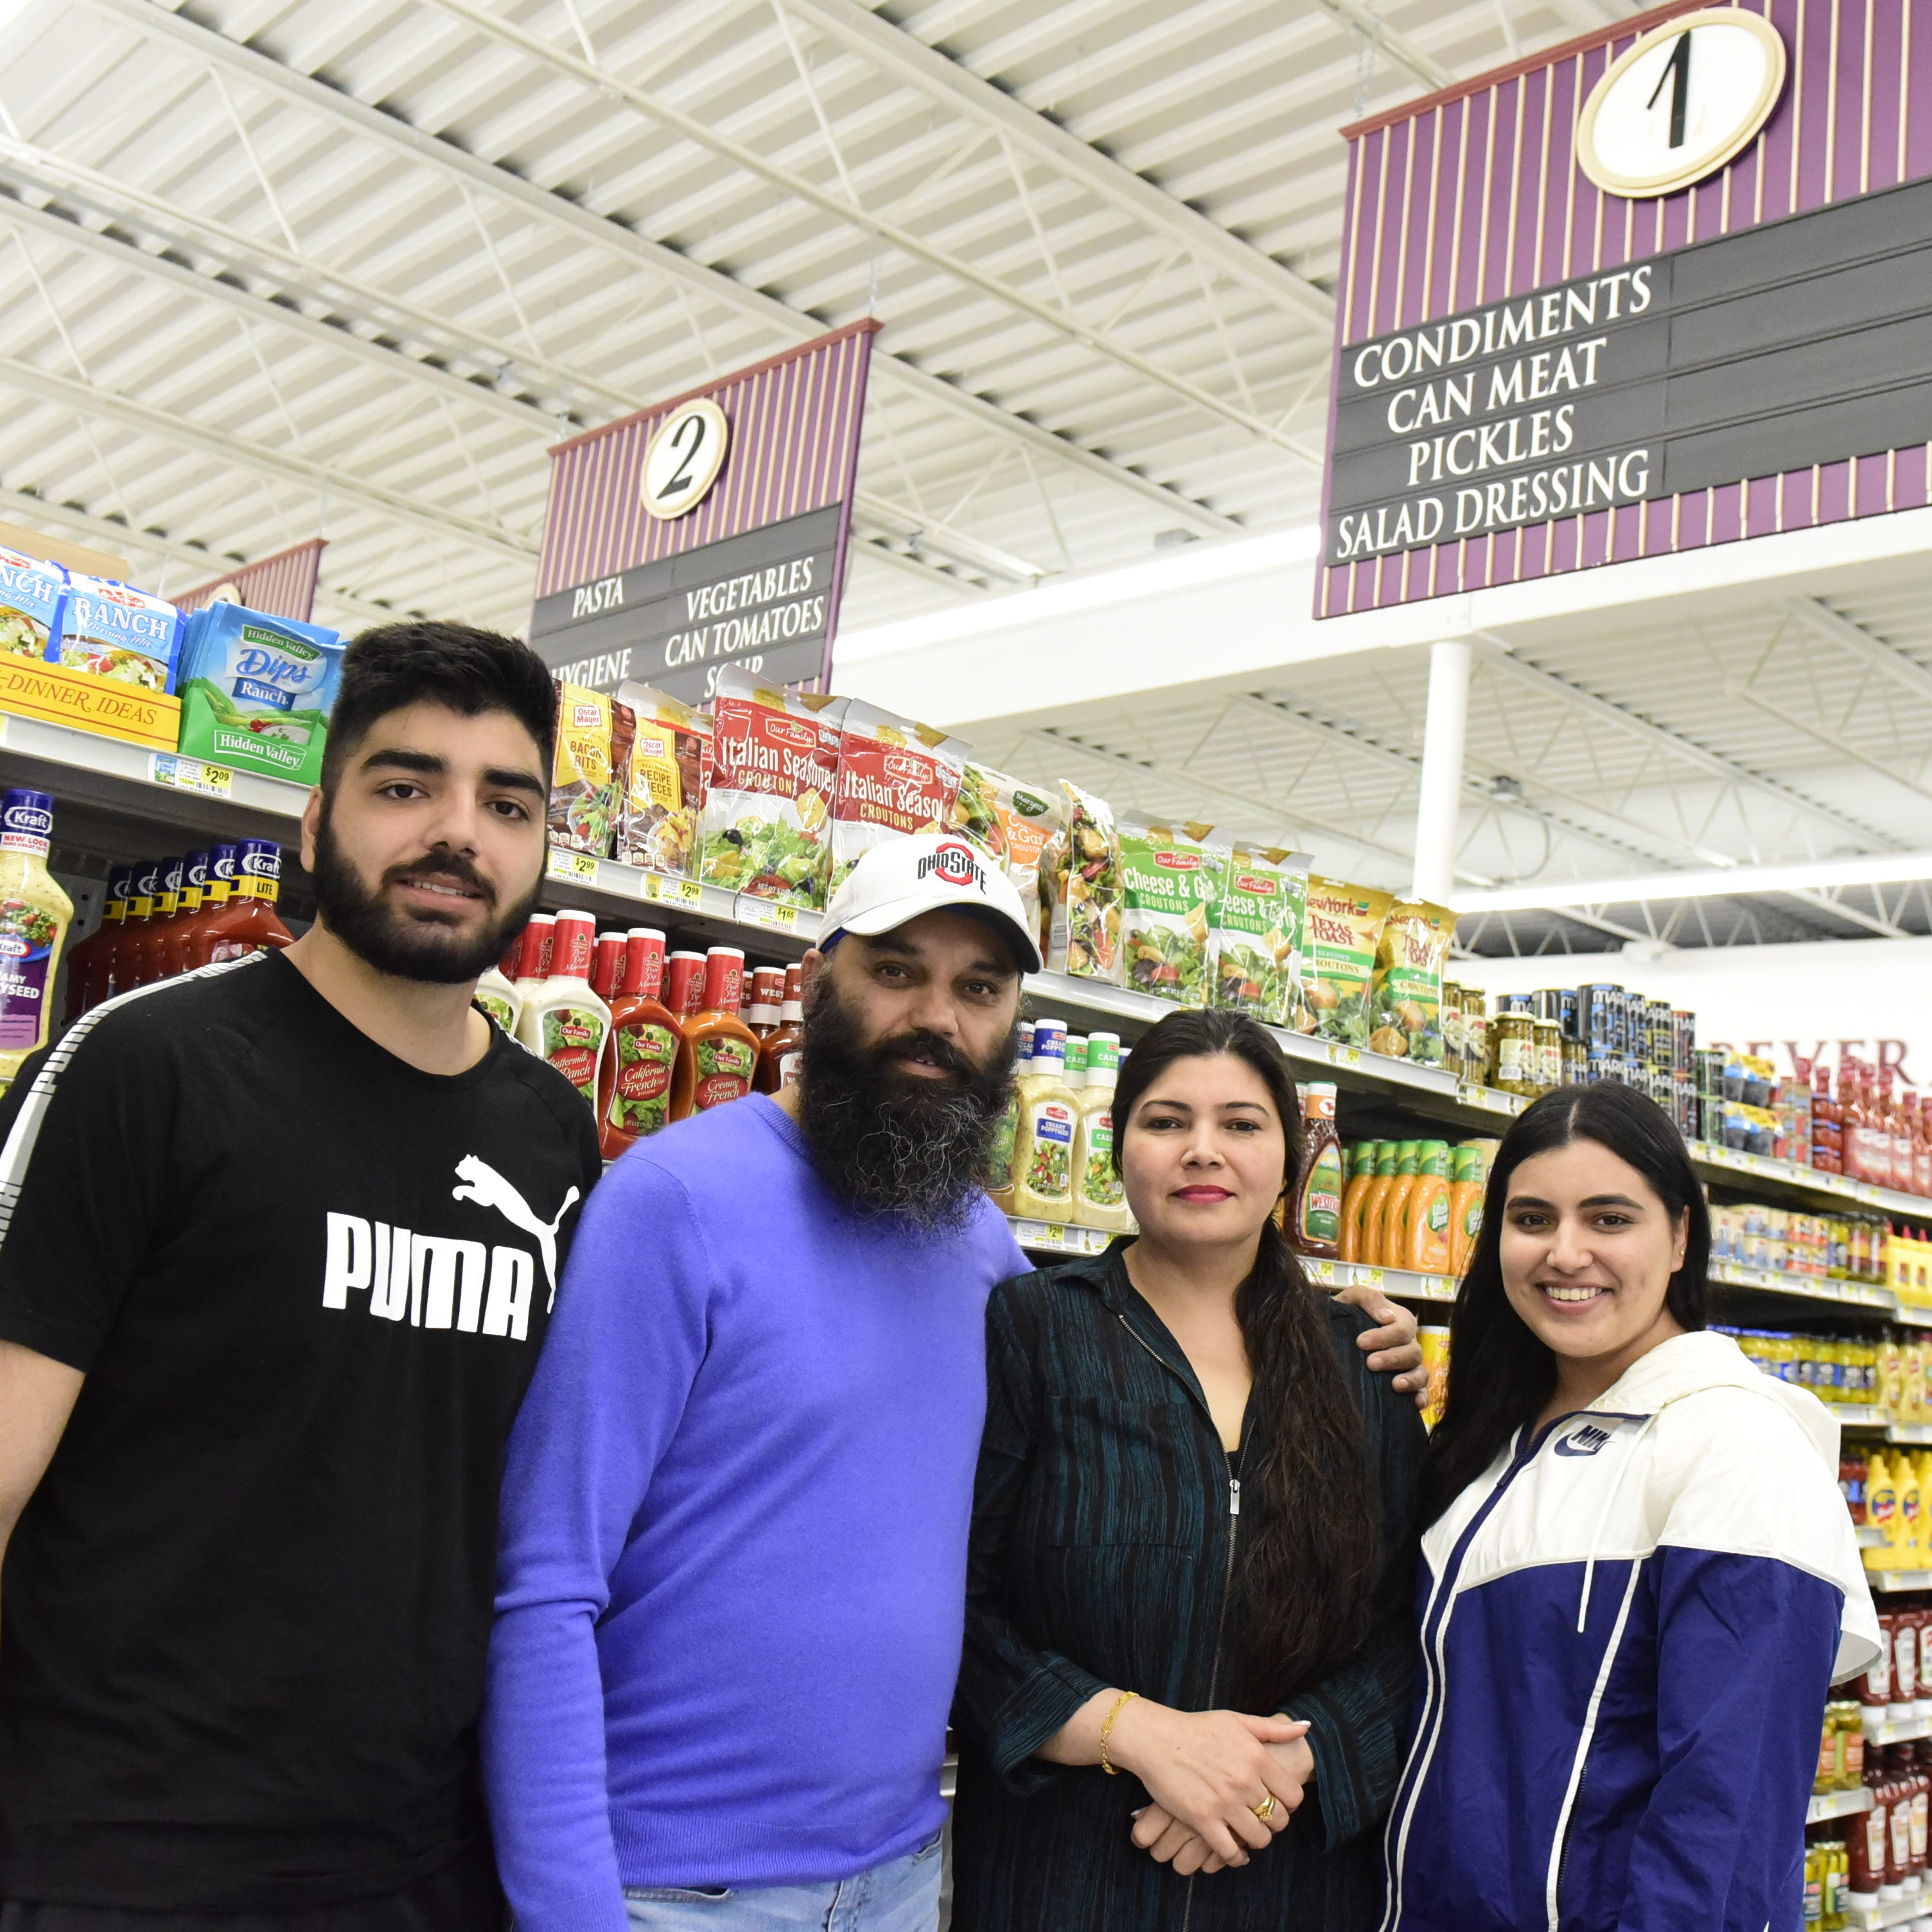 KV Market to feature full-service grocery store and a convenience shop